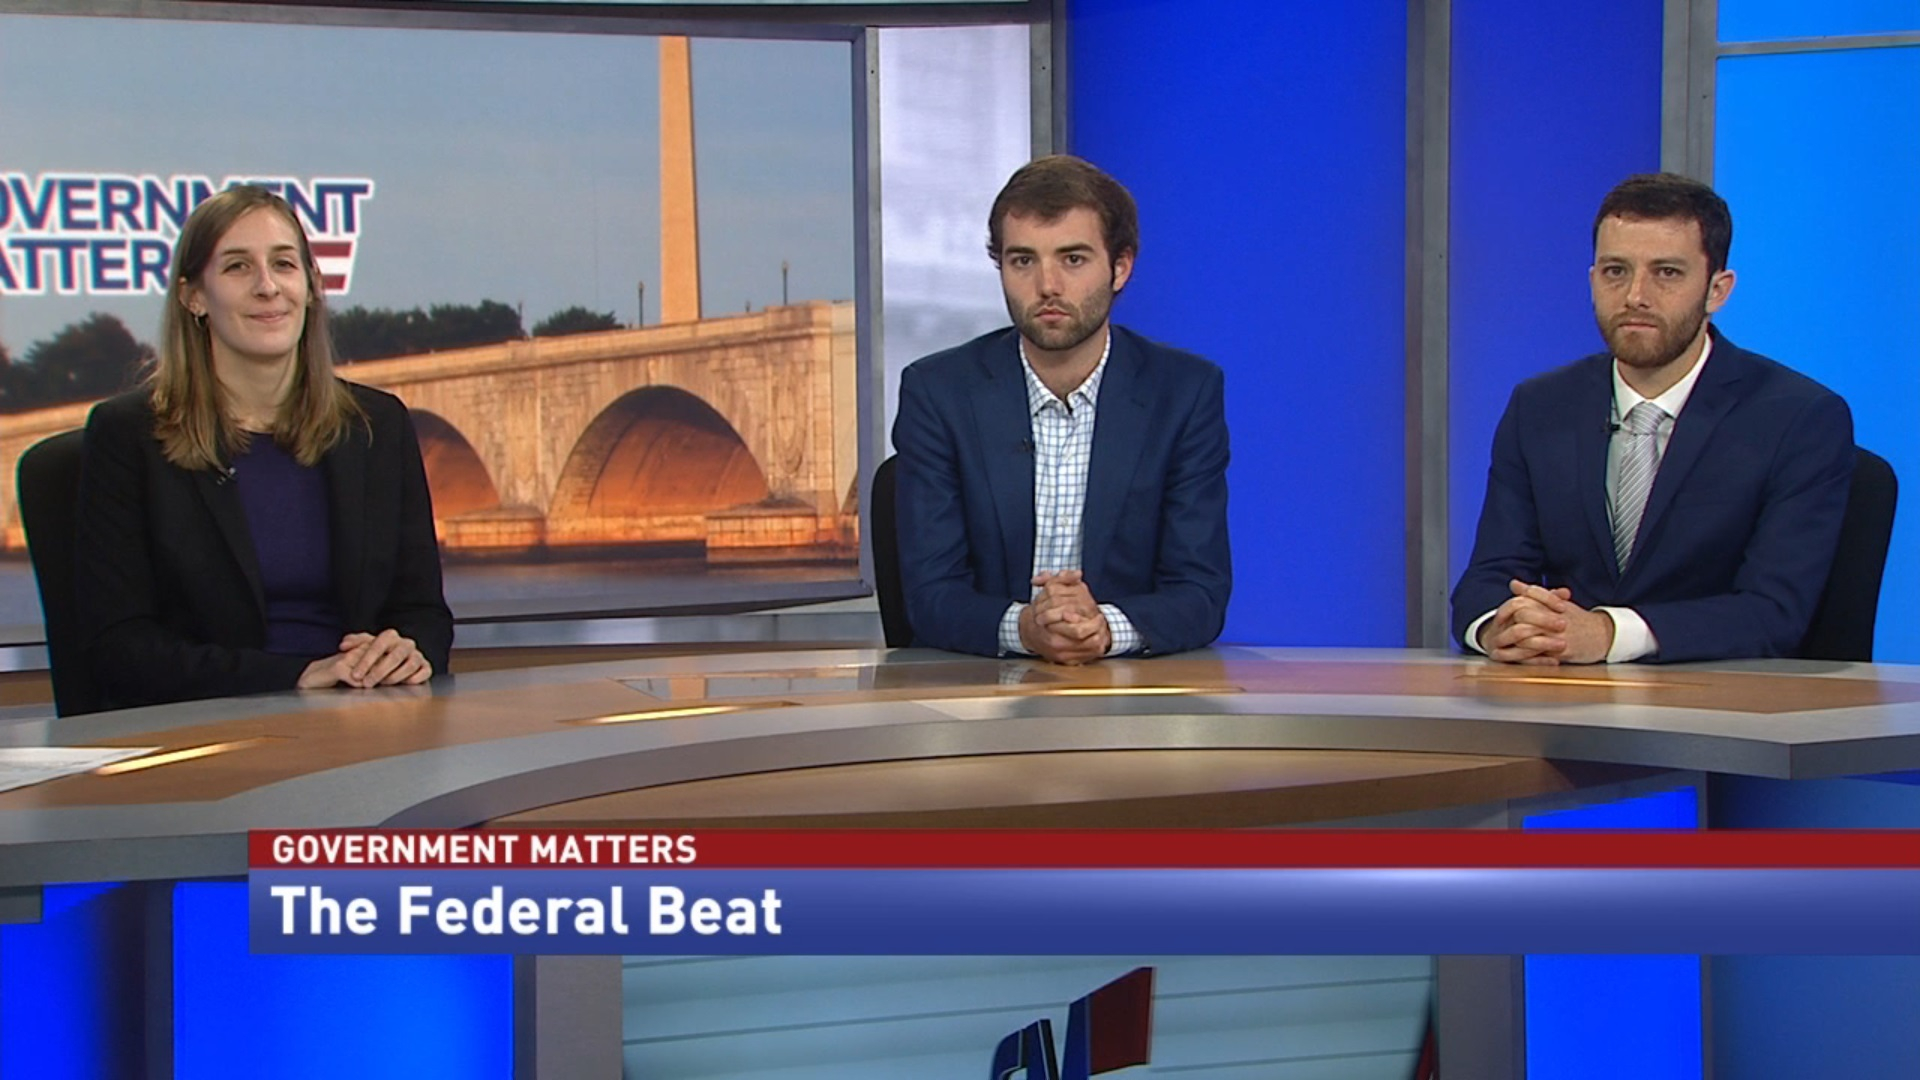 The Federal Beat – November 11, 2018